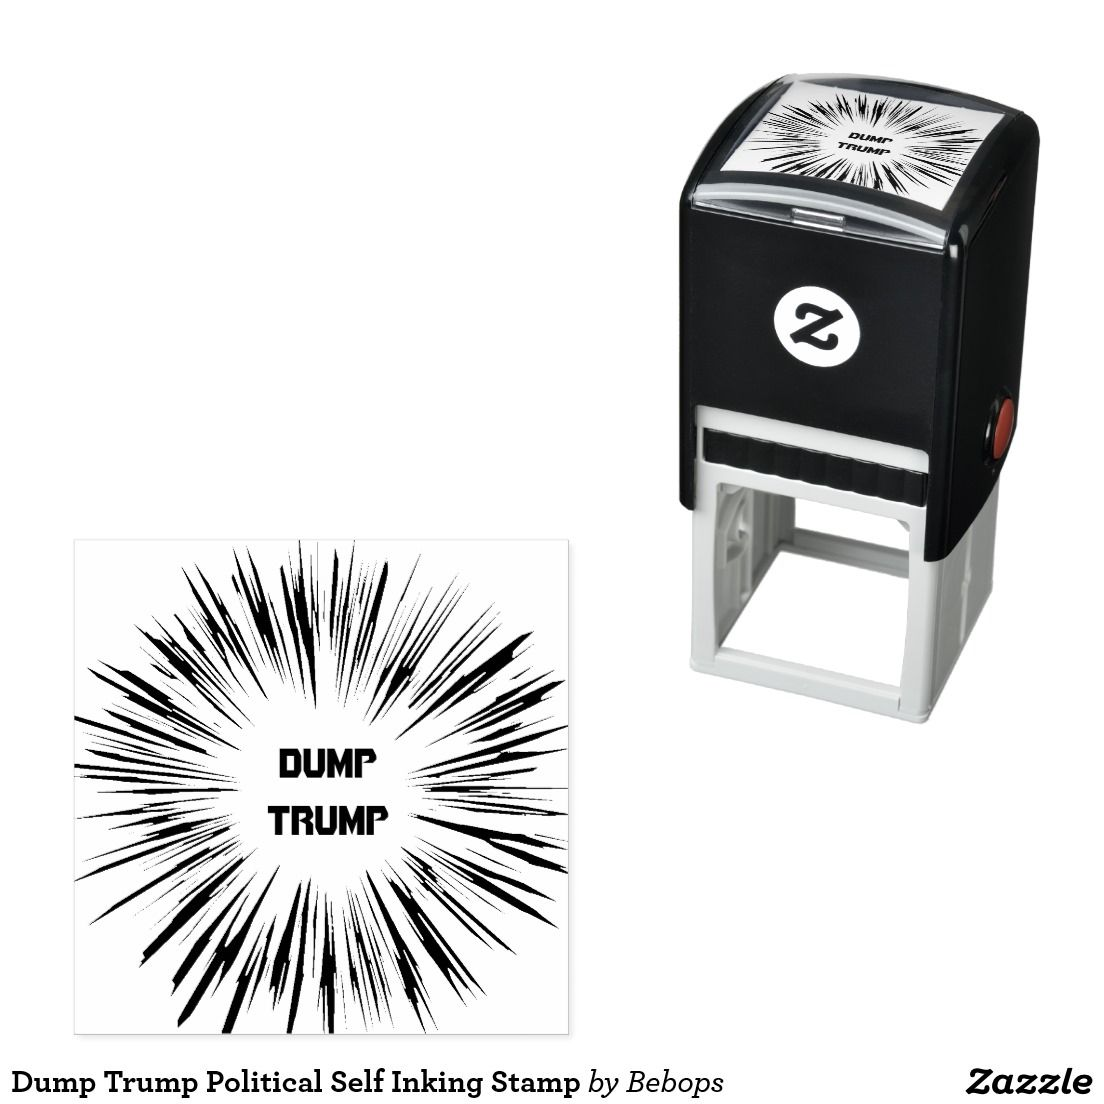 Dump Trump Political Self Inking Stamp